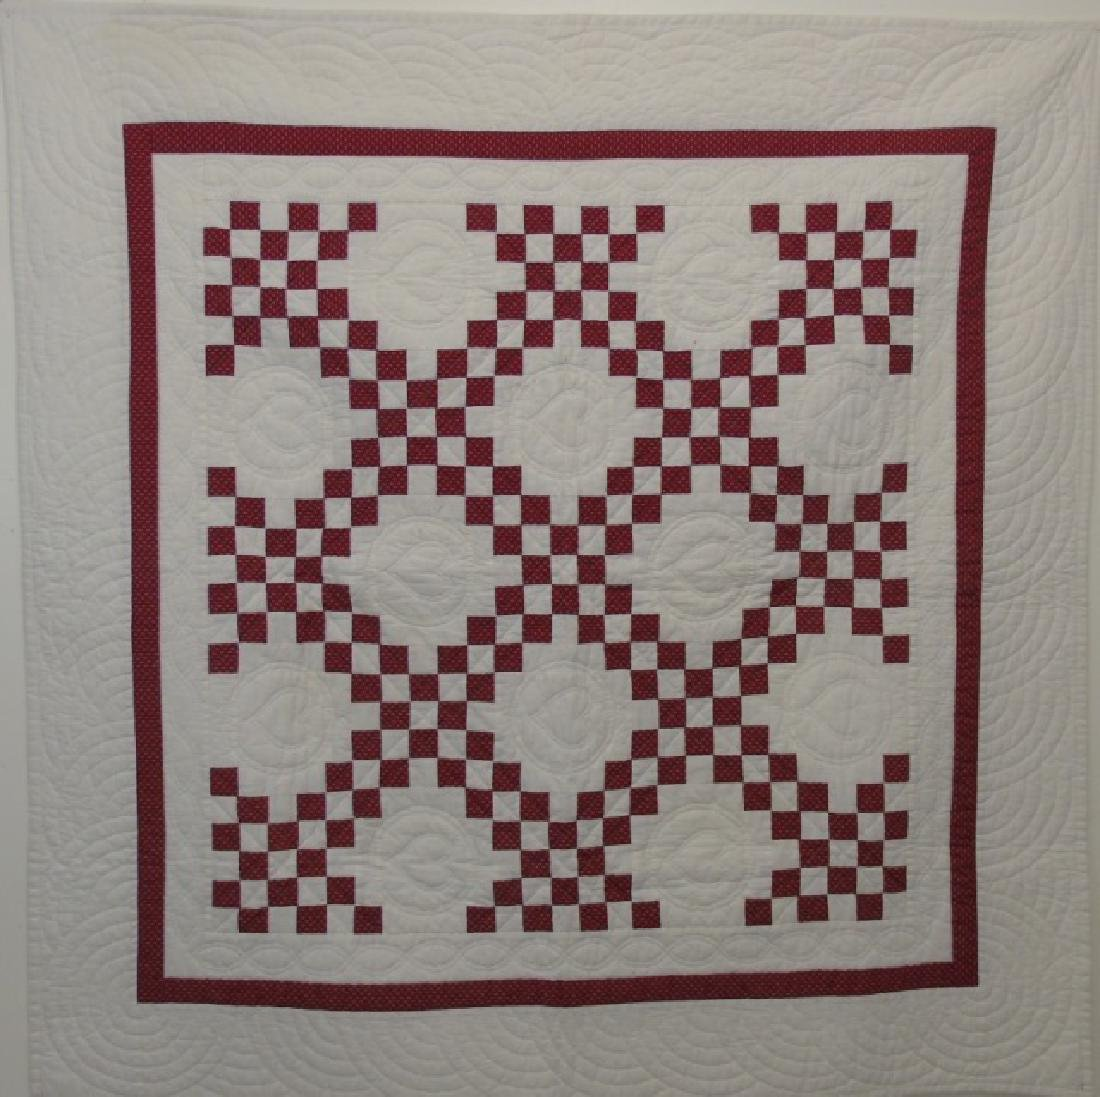 Antique Hand-Stitched Red & White Cotton Quilt